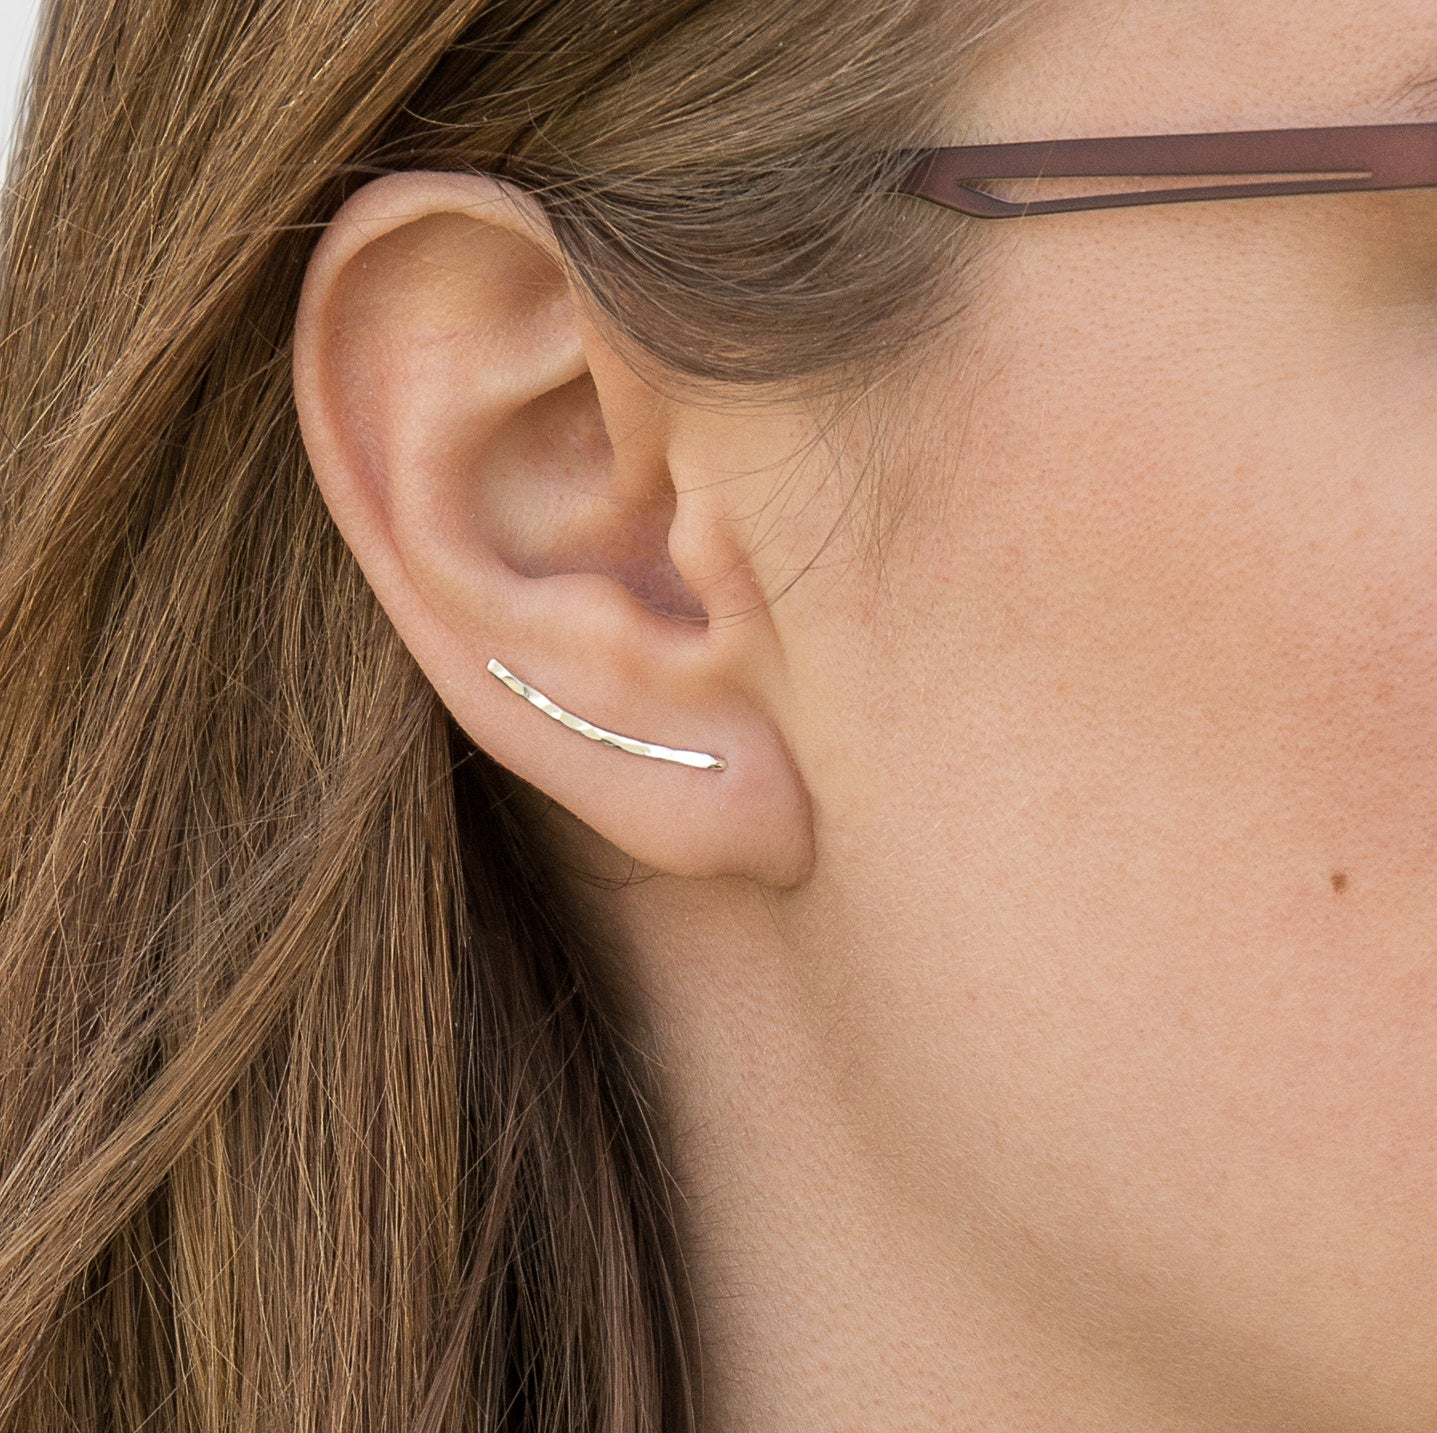 Sterling Silver Ear Climber, 100% Recycled - Ethical Brandz